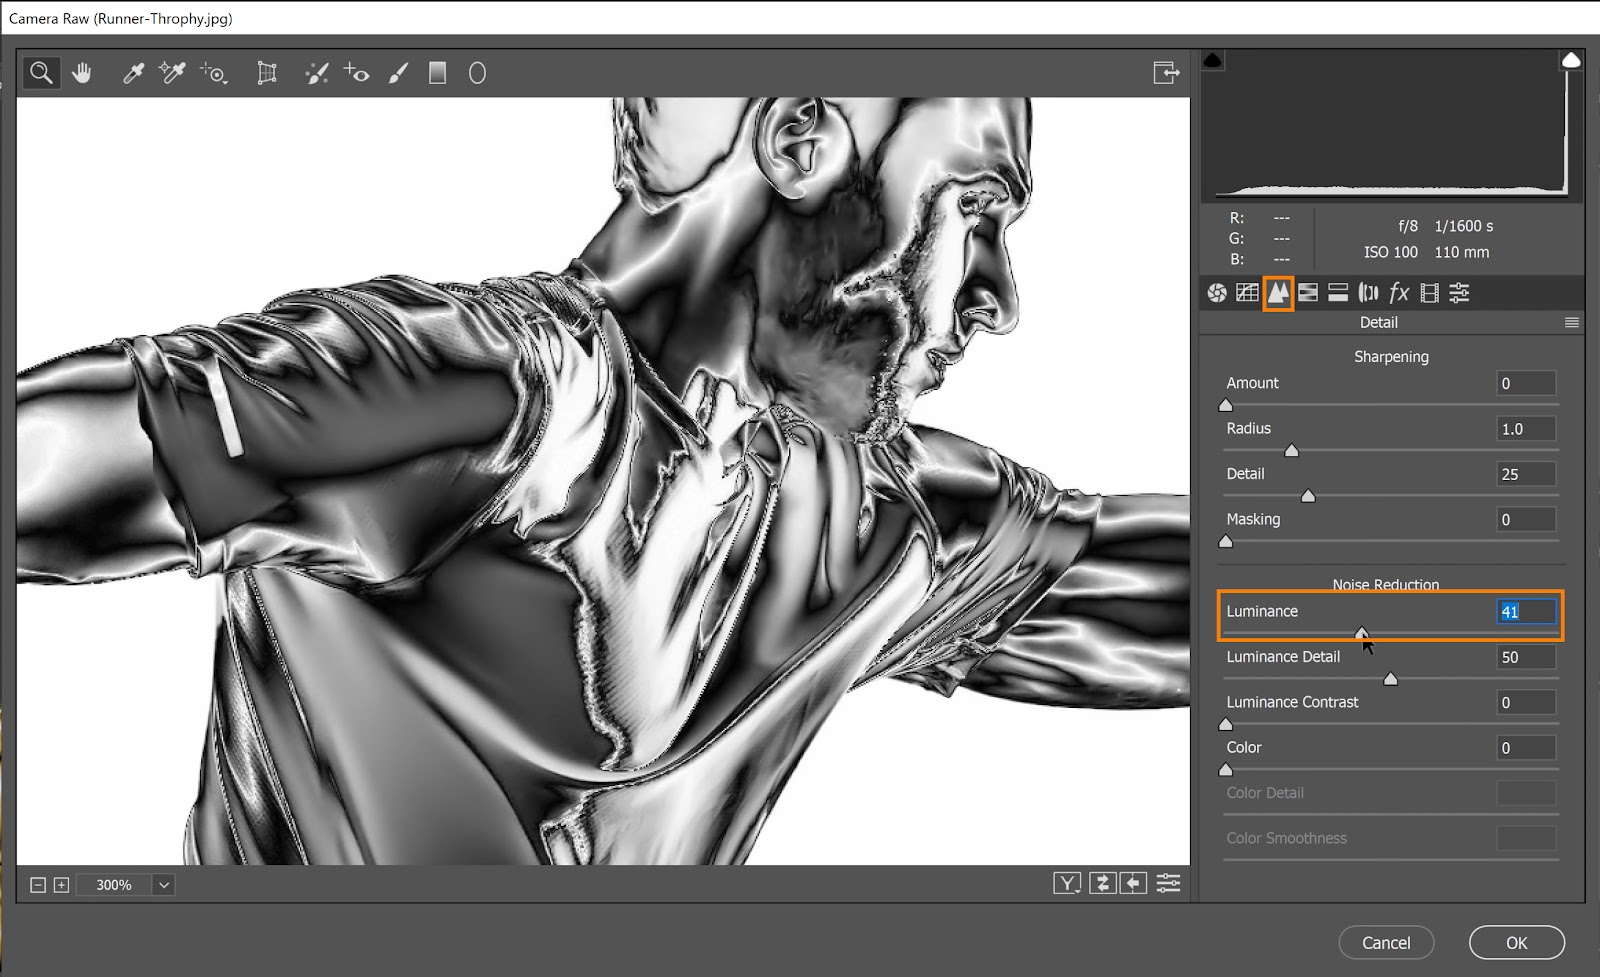 On the Detail tab, increase the Luminance to increase the noise reduction and remove the remaining details of the body hair, facial hair, and the mesh pattern of the shirt